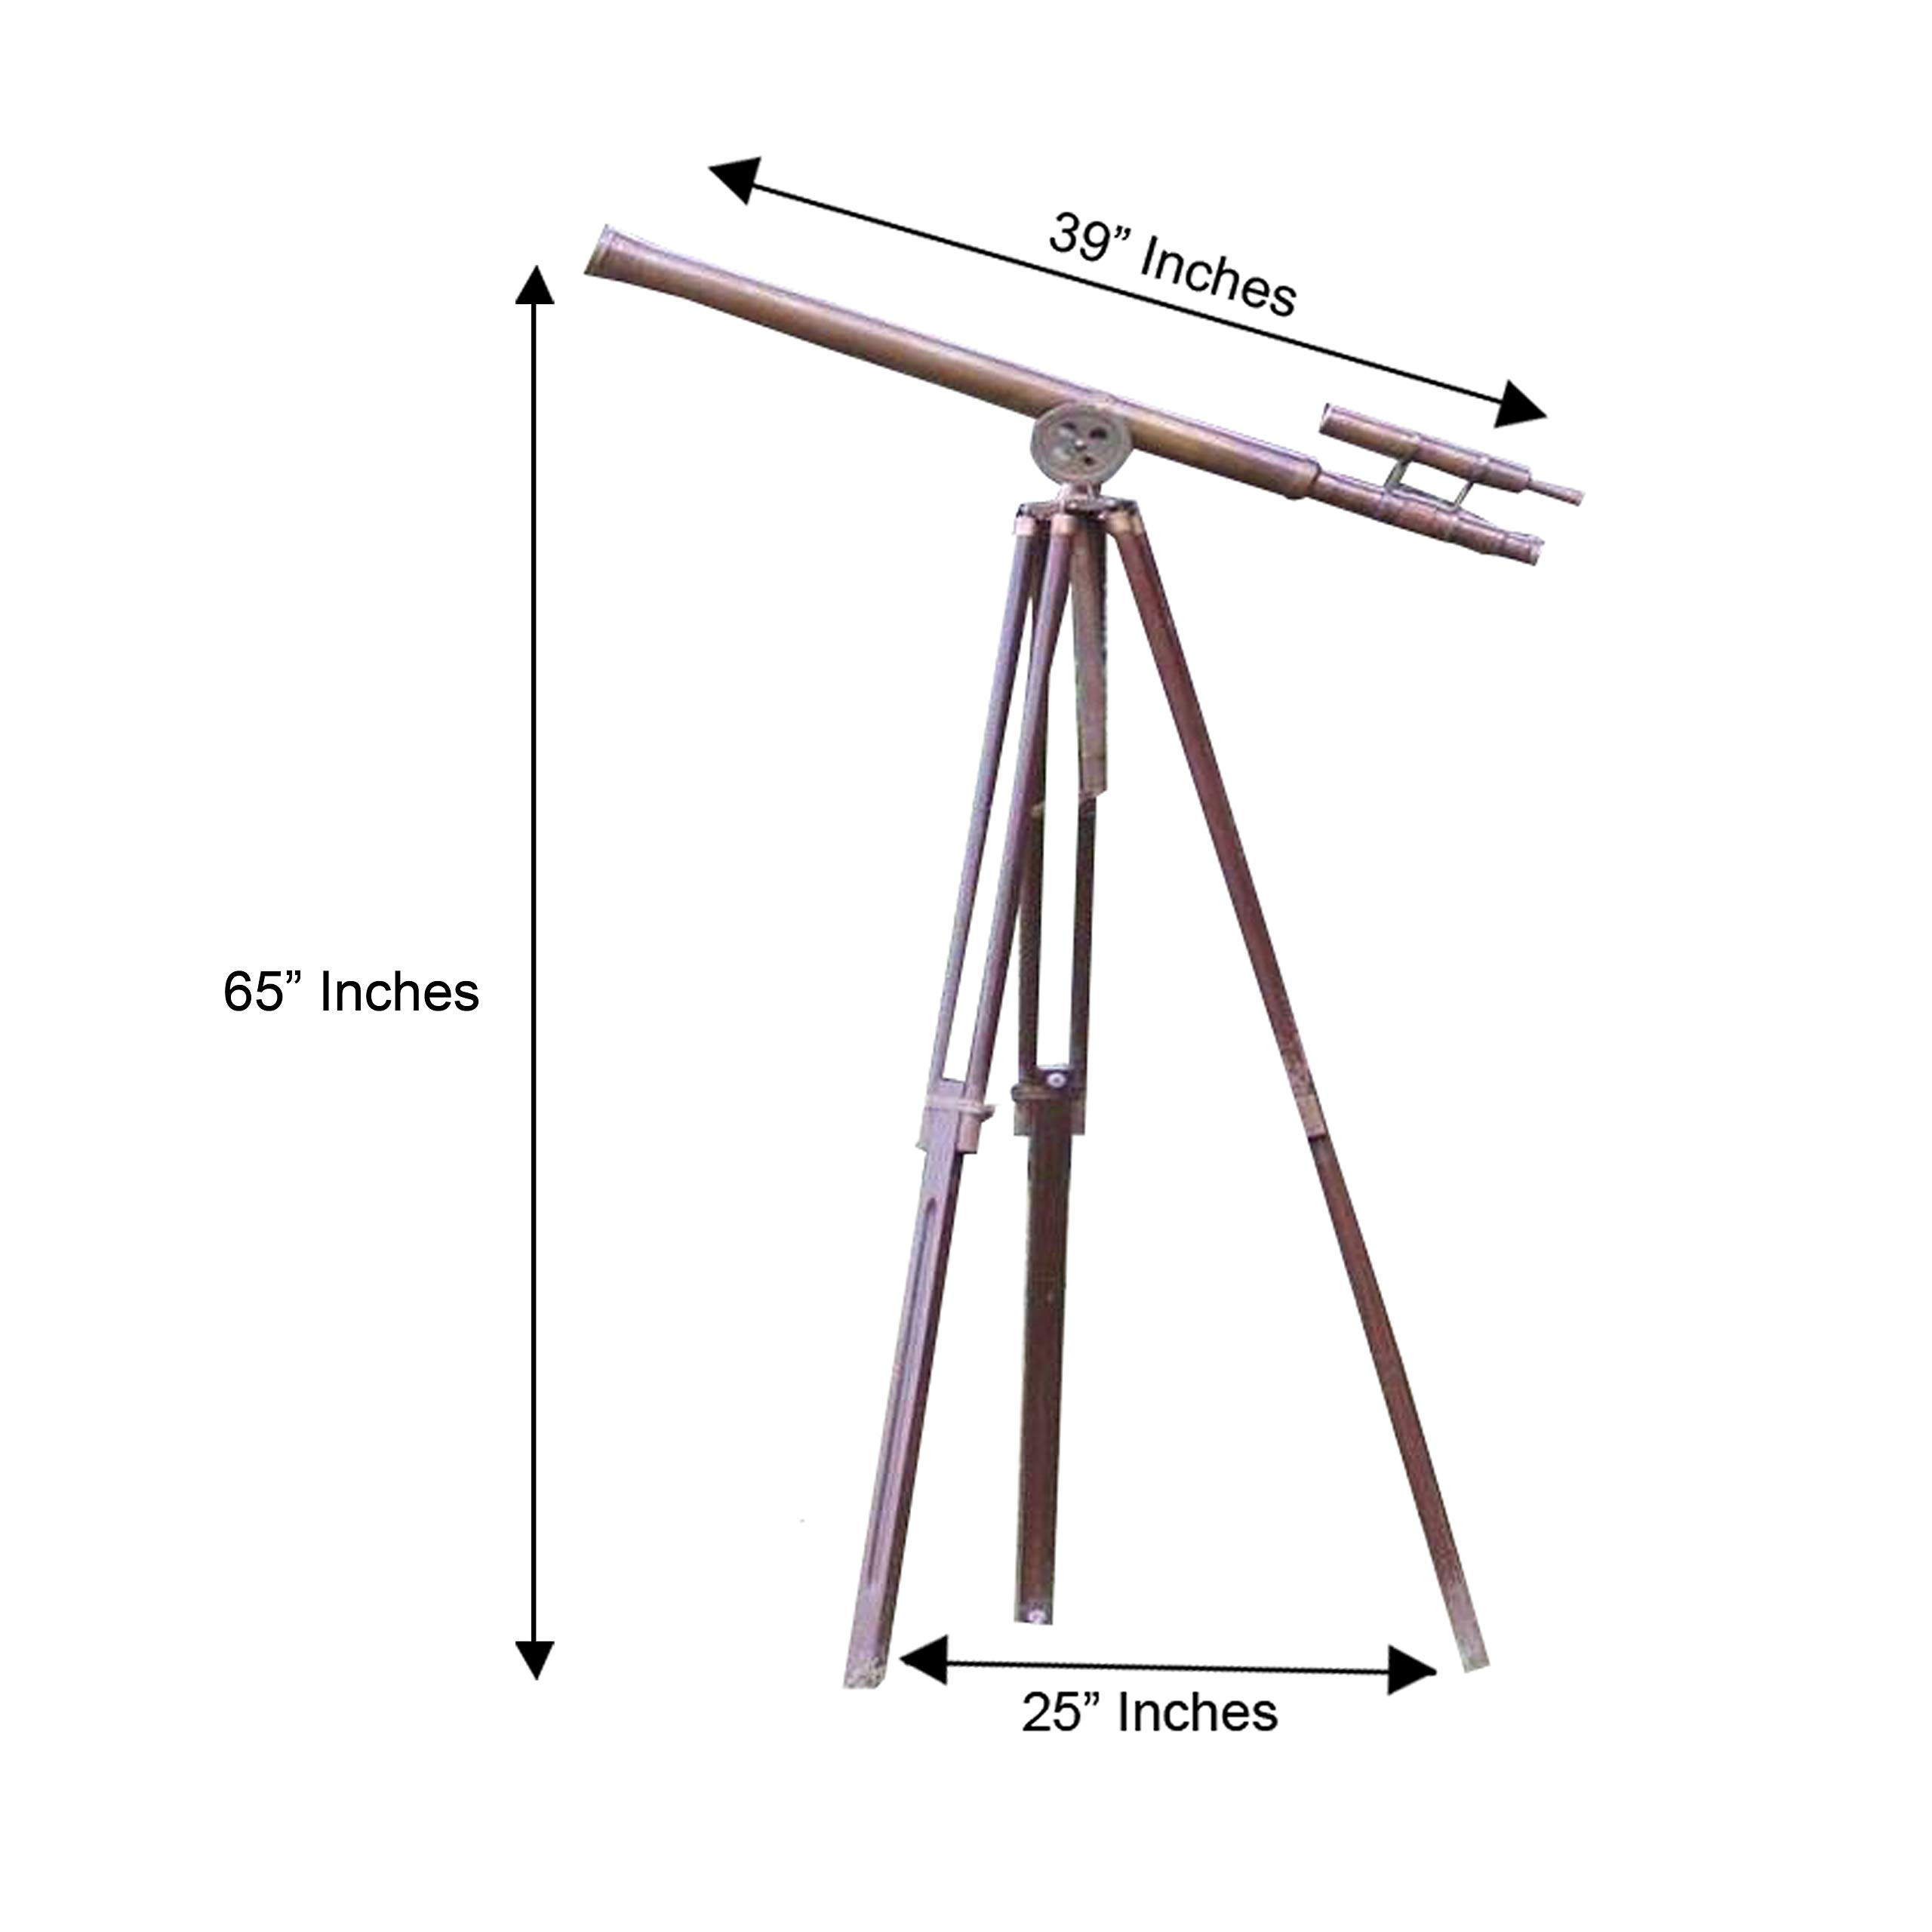 CollectiblesBuy Antique Telescope Vintage Brass Master Harbor Floor Standing with Tripod Stand ~ 39'' by CollectiblesBuy